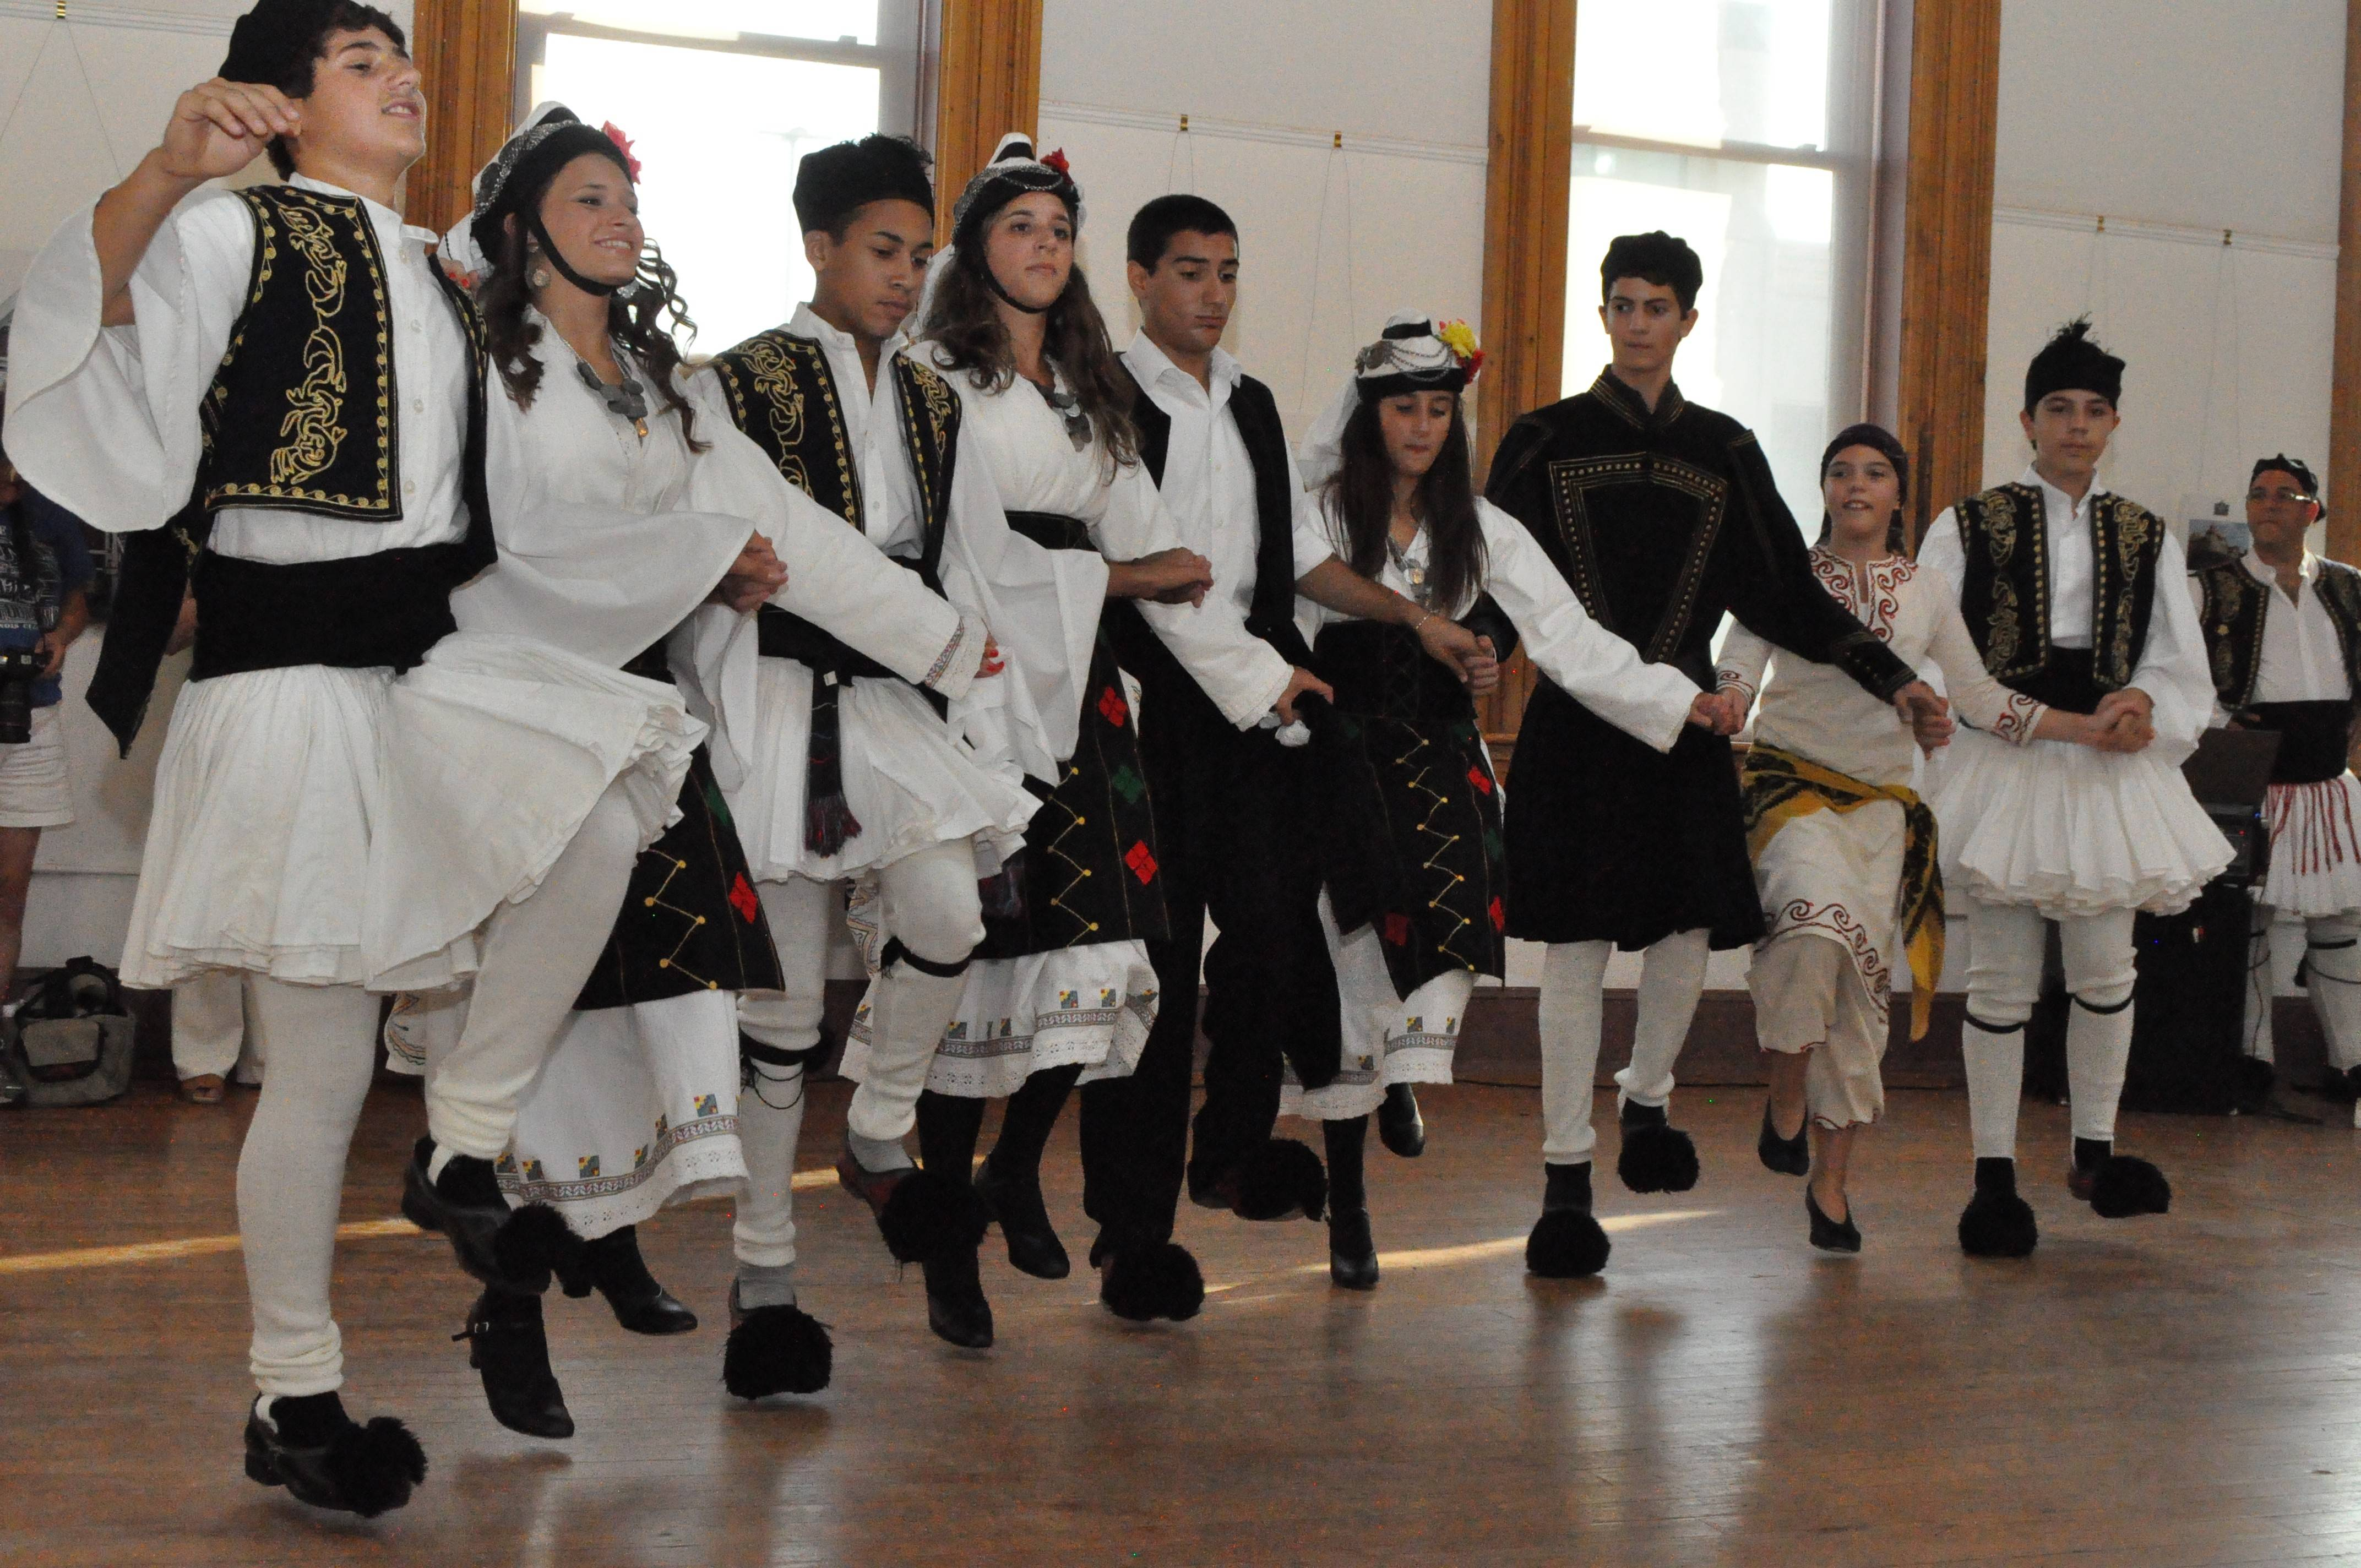 The Apollo Dance Troupe was founded by Aurorans Michael and Eva Kontos in an effort to teach young people more about their Greek culture. The Kontoses are among eight community leaders being honored at Sunday's Roots Aurora festival.